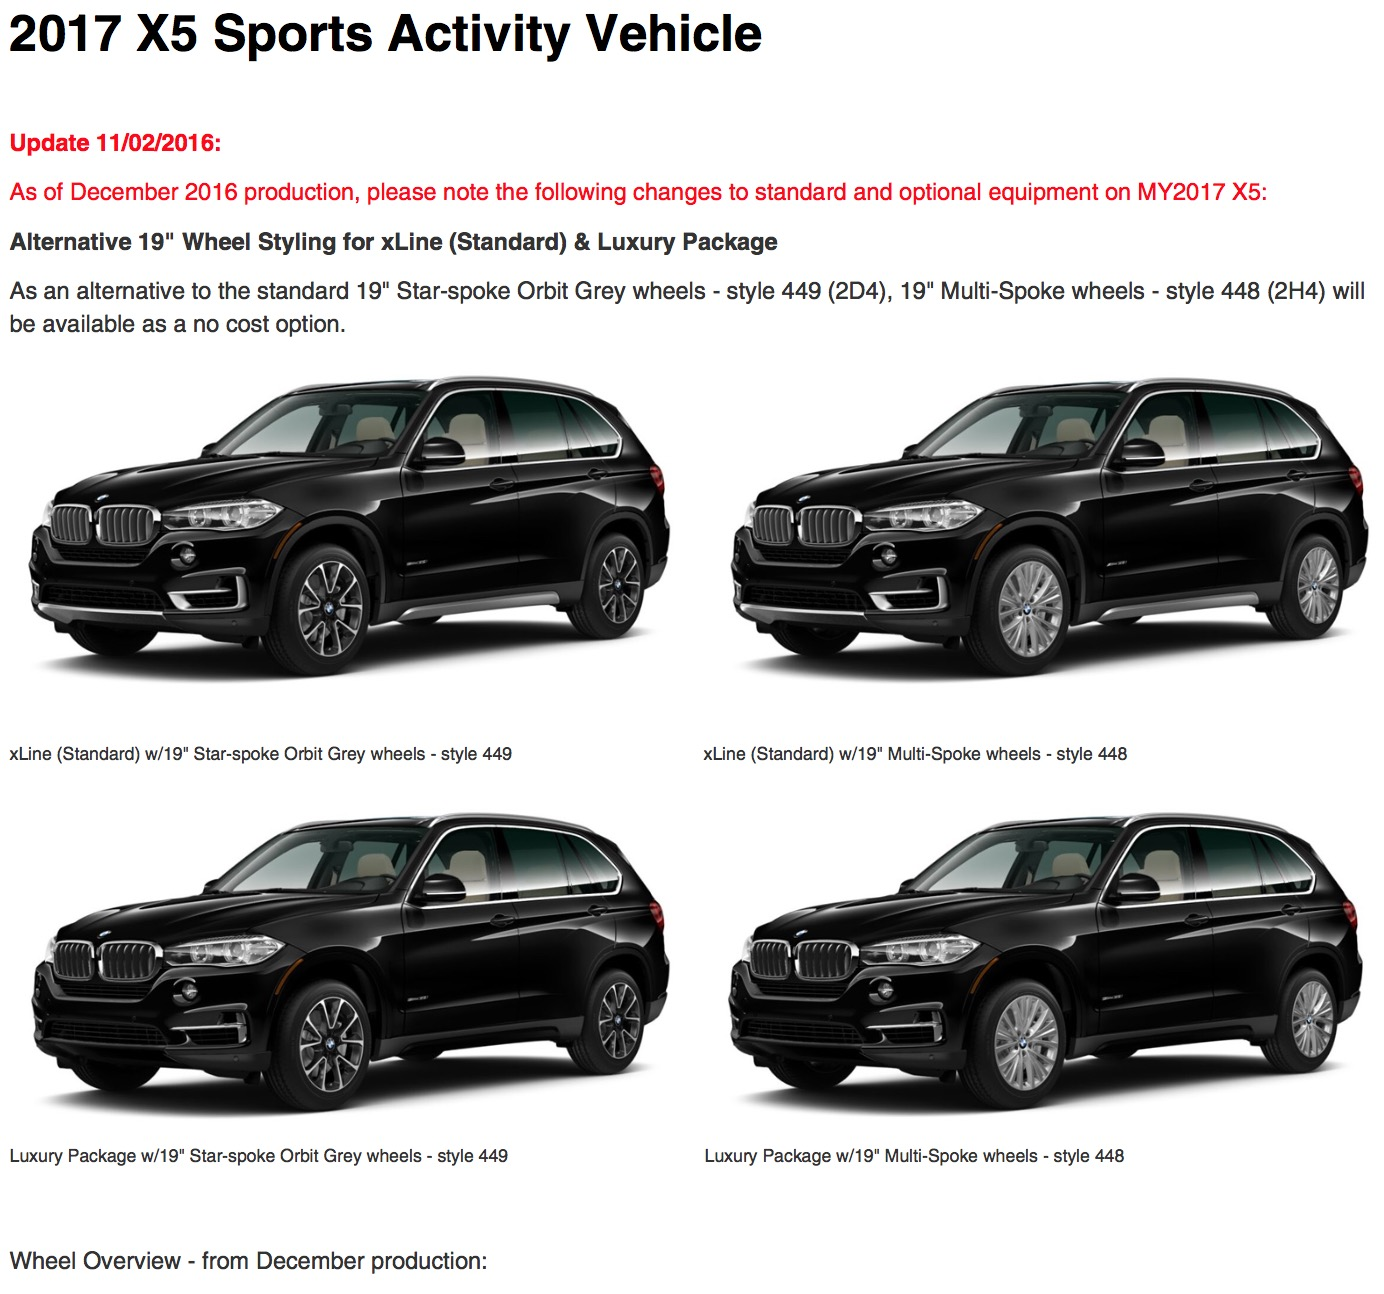 2017 Bmw X5 And X6 Standard And Optional Equipment Changes Bmw X5 And X6 Forum F15 F16